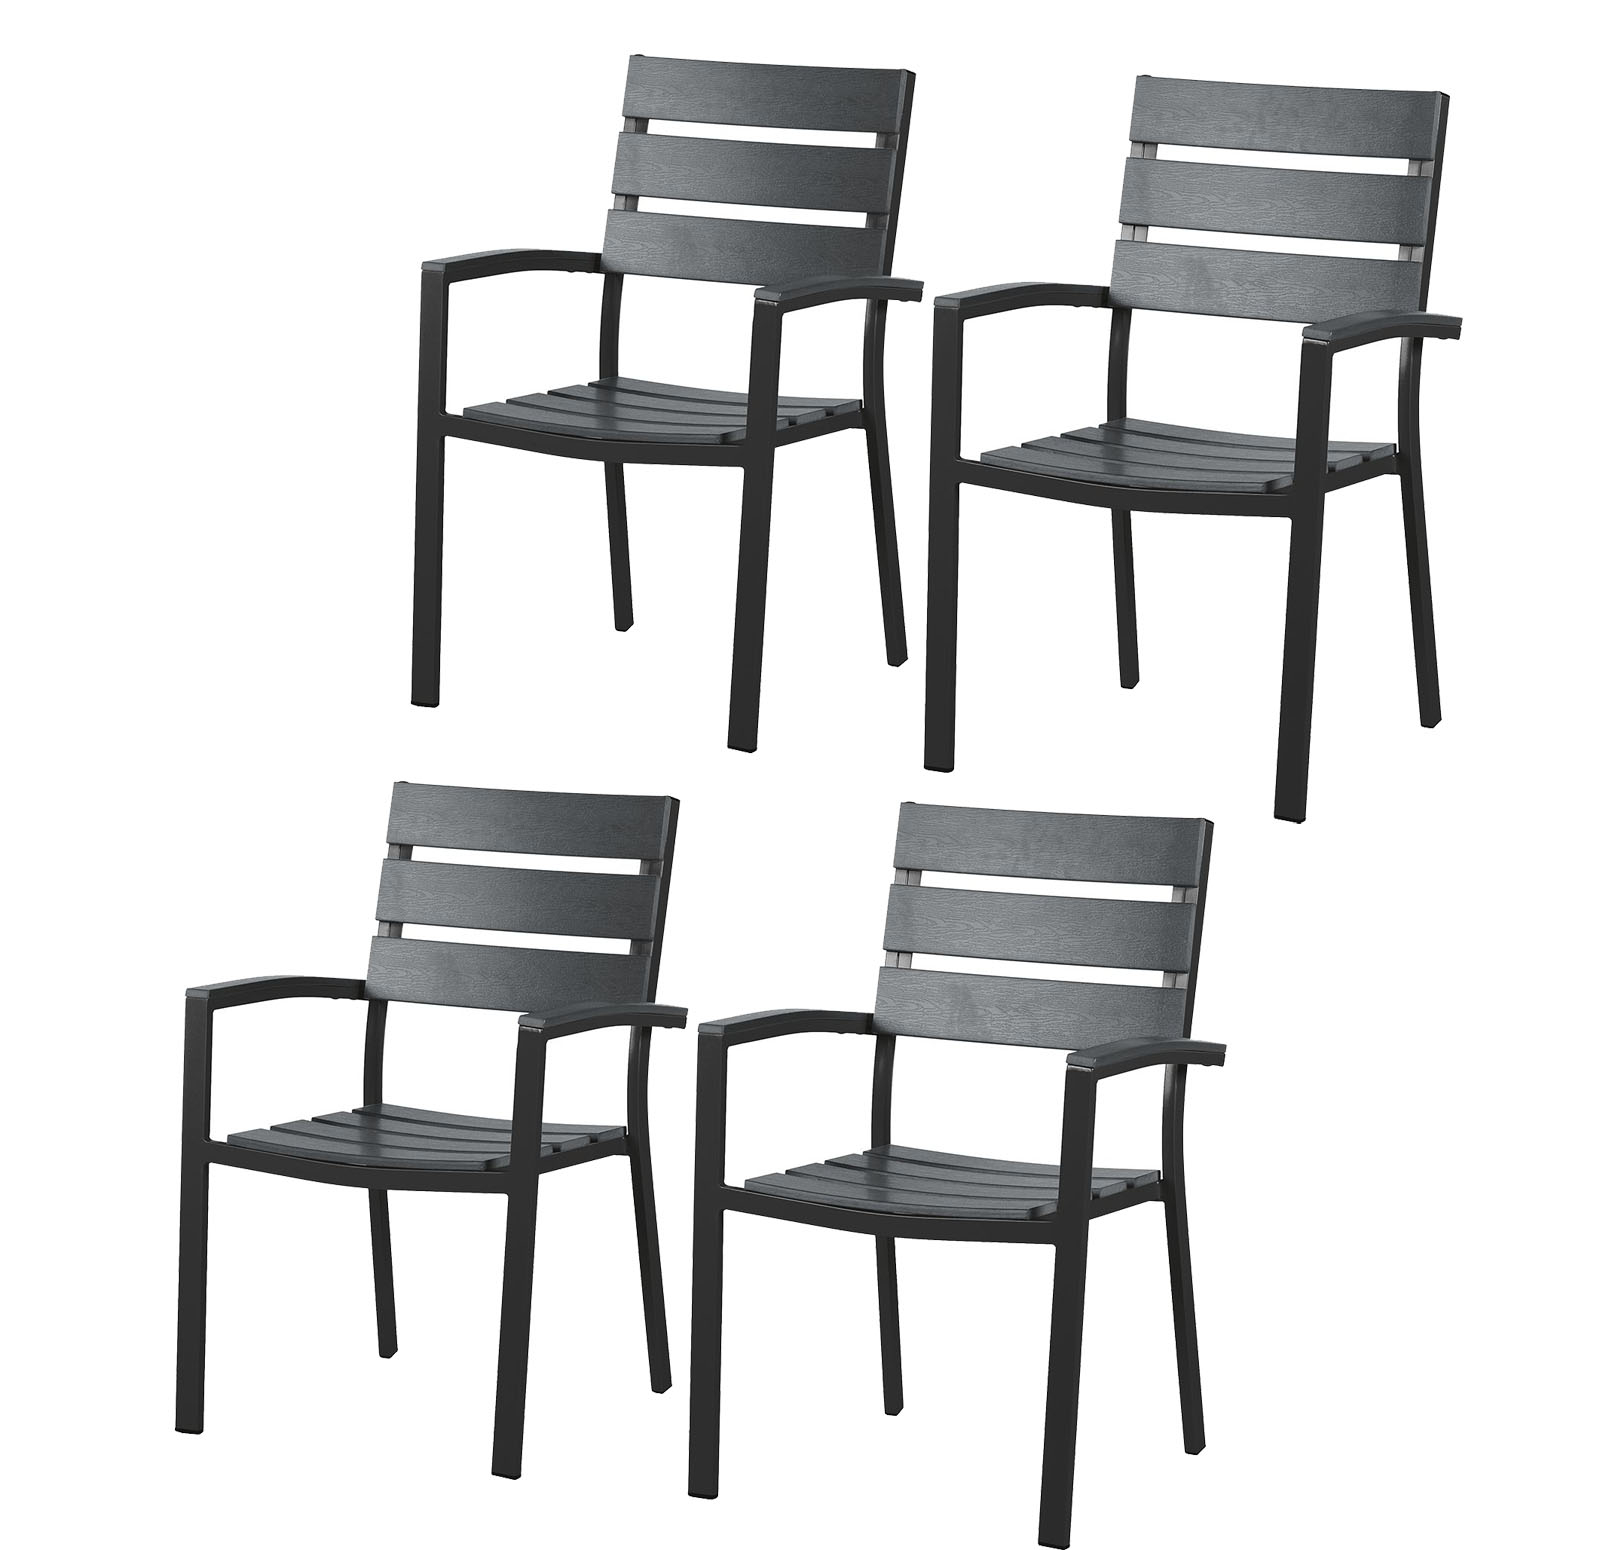 4x gartenstuhl polywood aluminium alu sessel stuhl set holz gartenm bel schwarz ebay. Black Bedroom Furniture Sets. Home Design Ideas